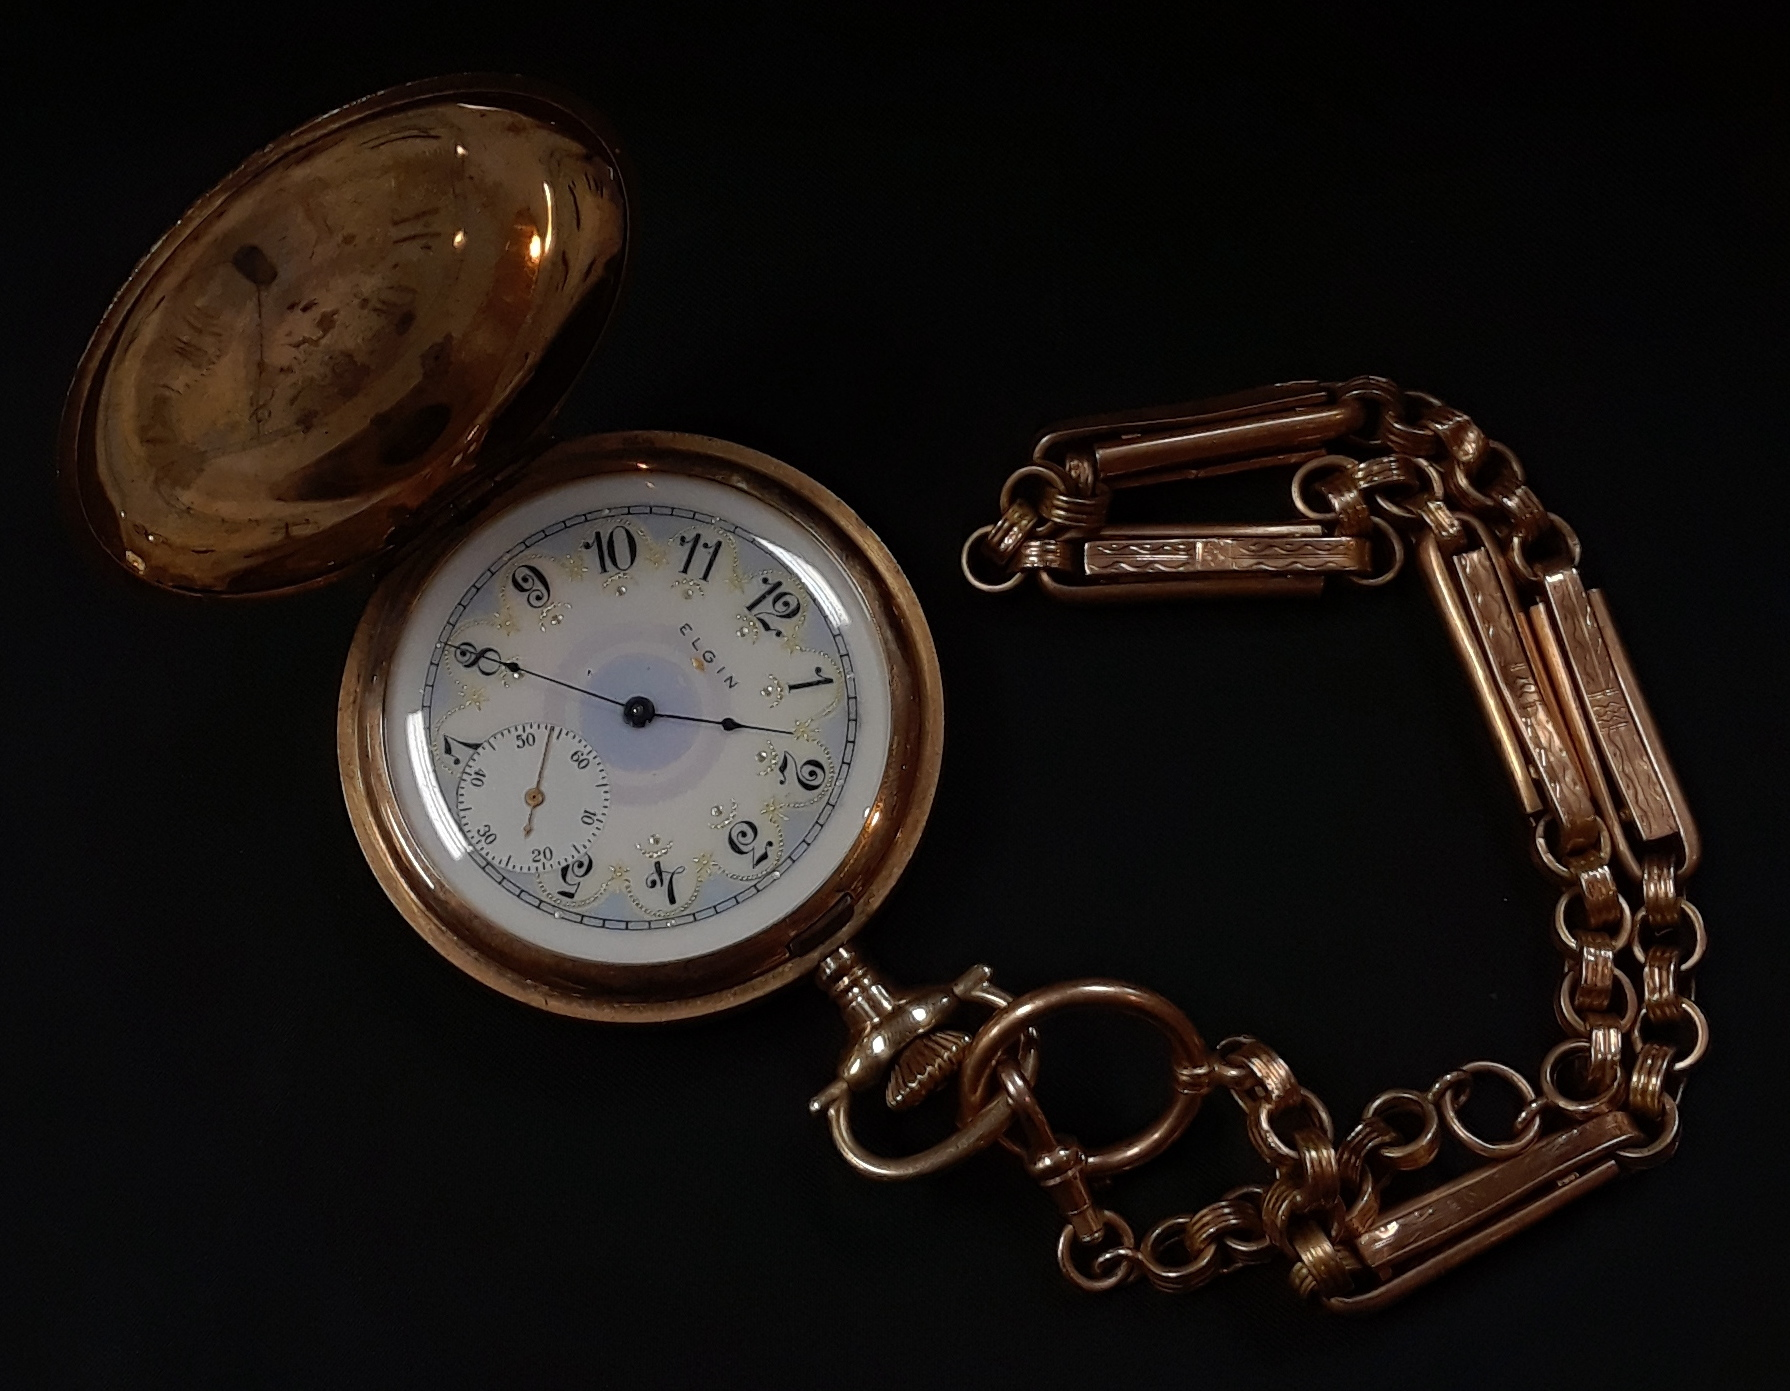 ELGIN POCKET WATCH WITH 15 RUBY JEWELS - MODEL: 6